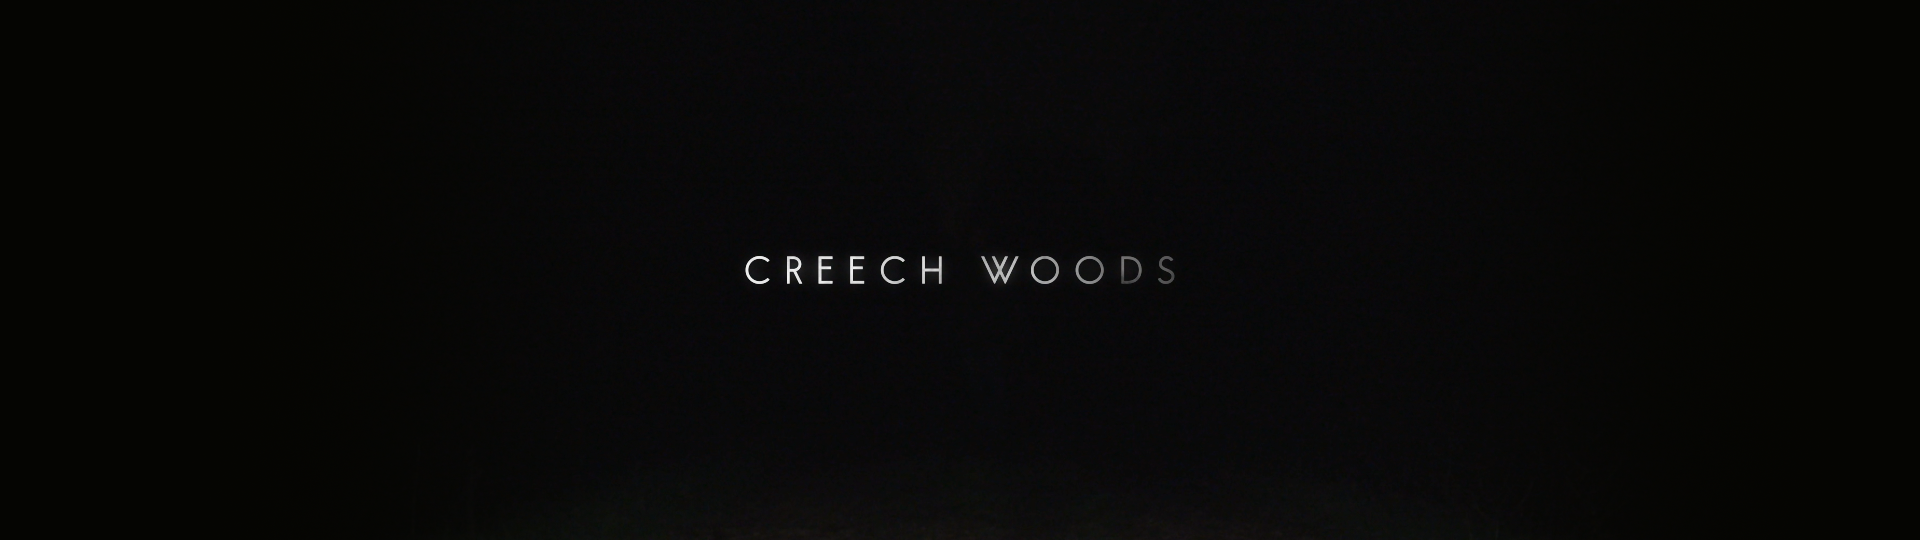 CREECH WOODS - Concept Film